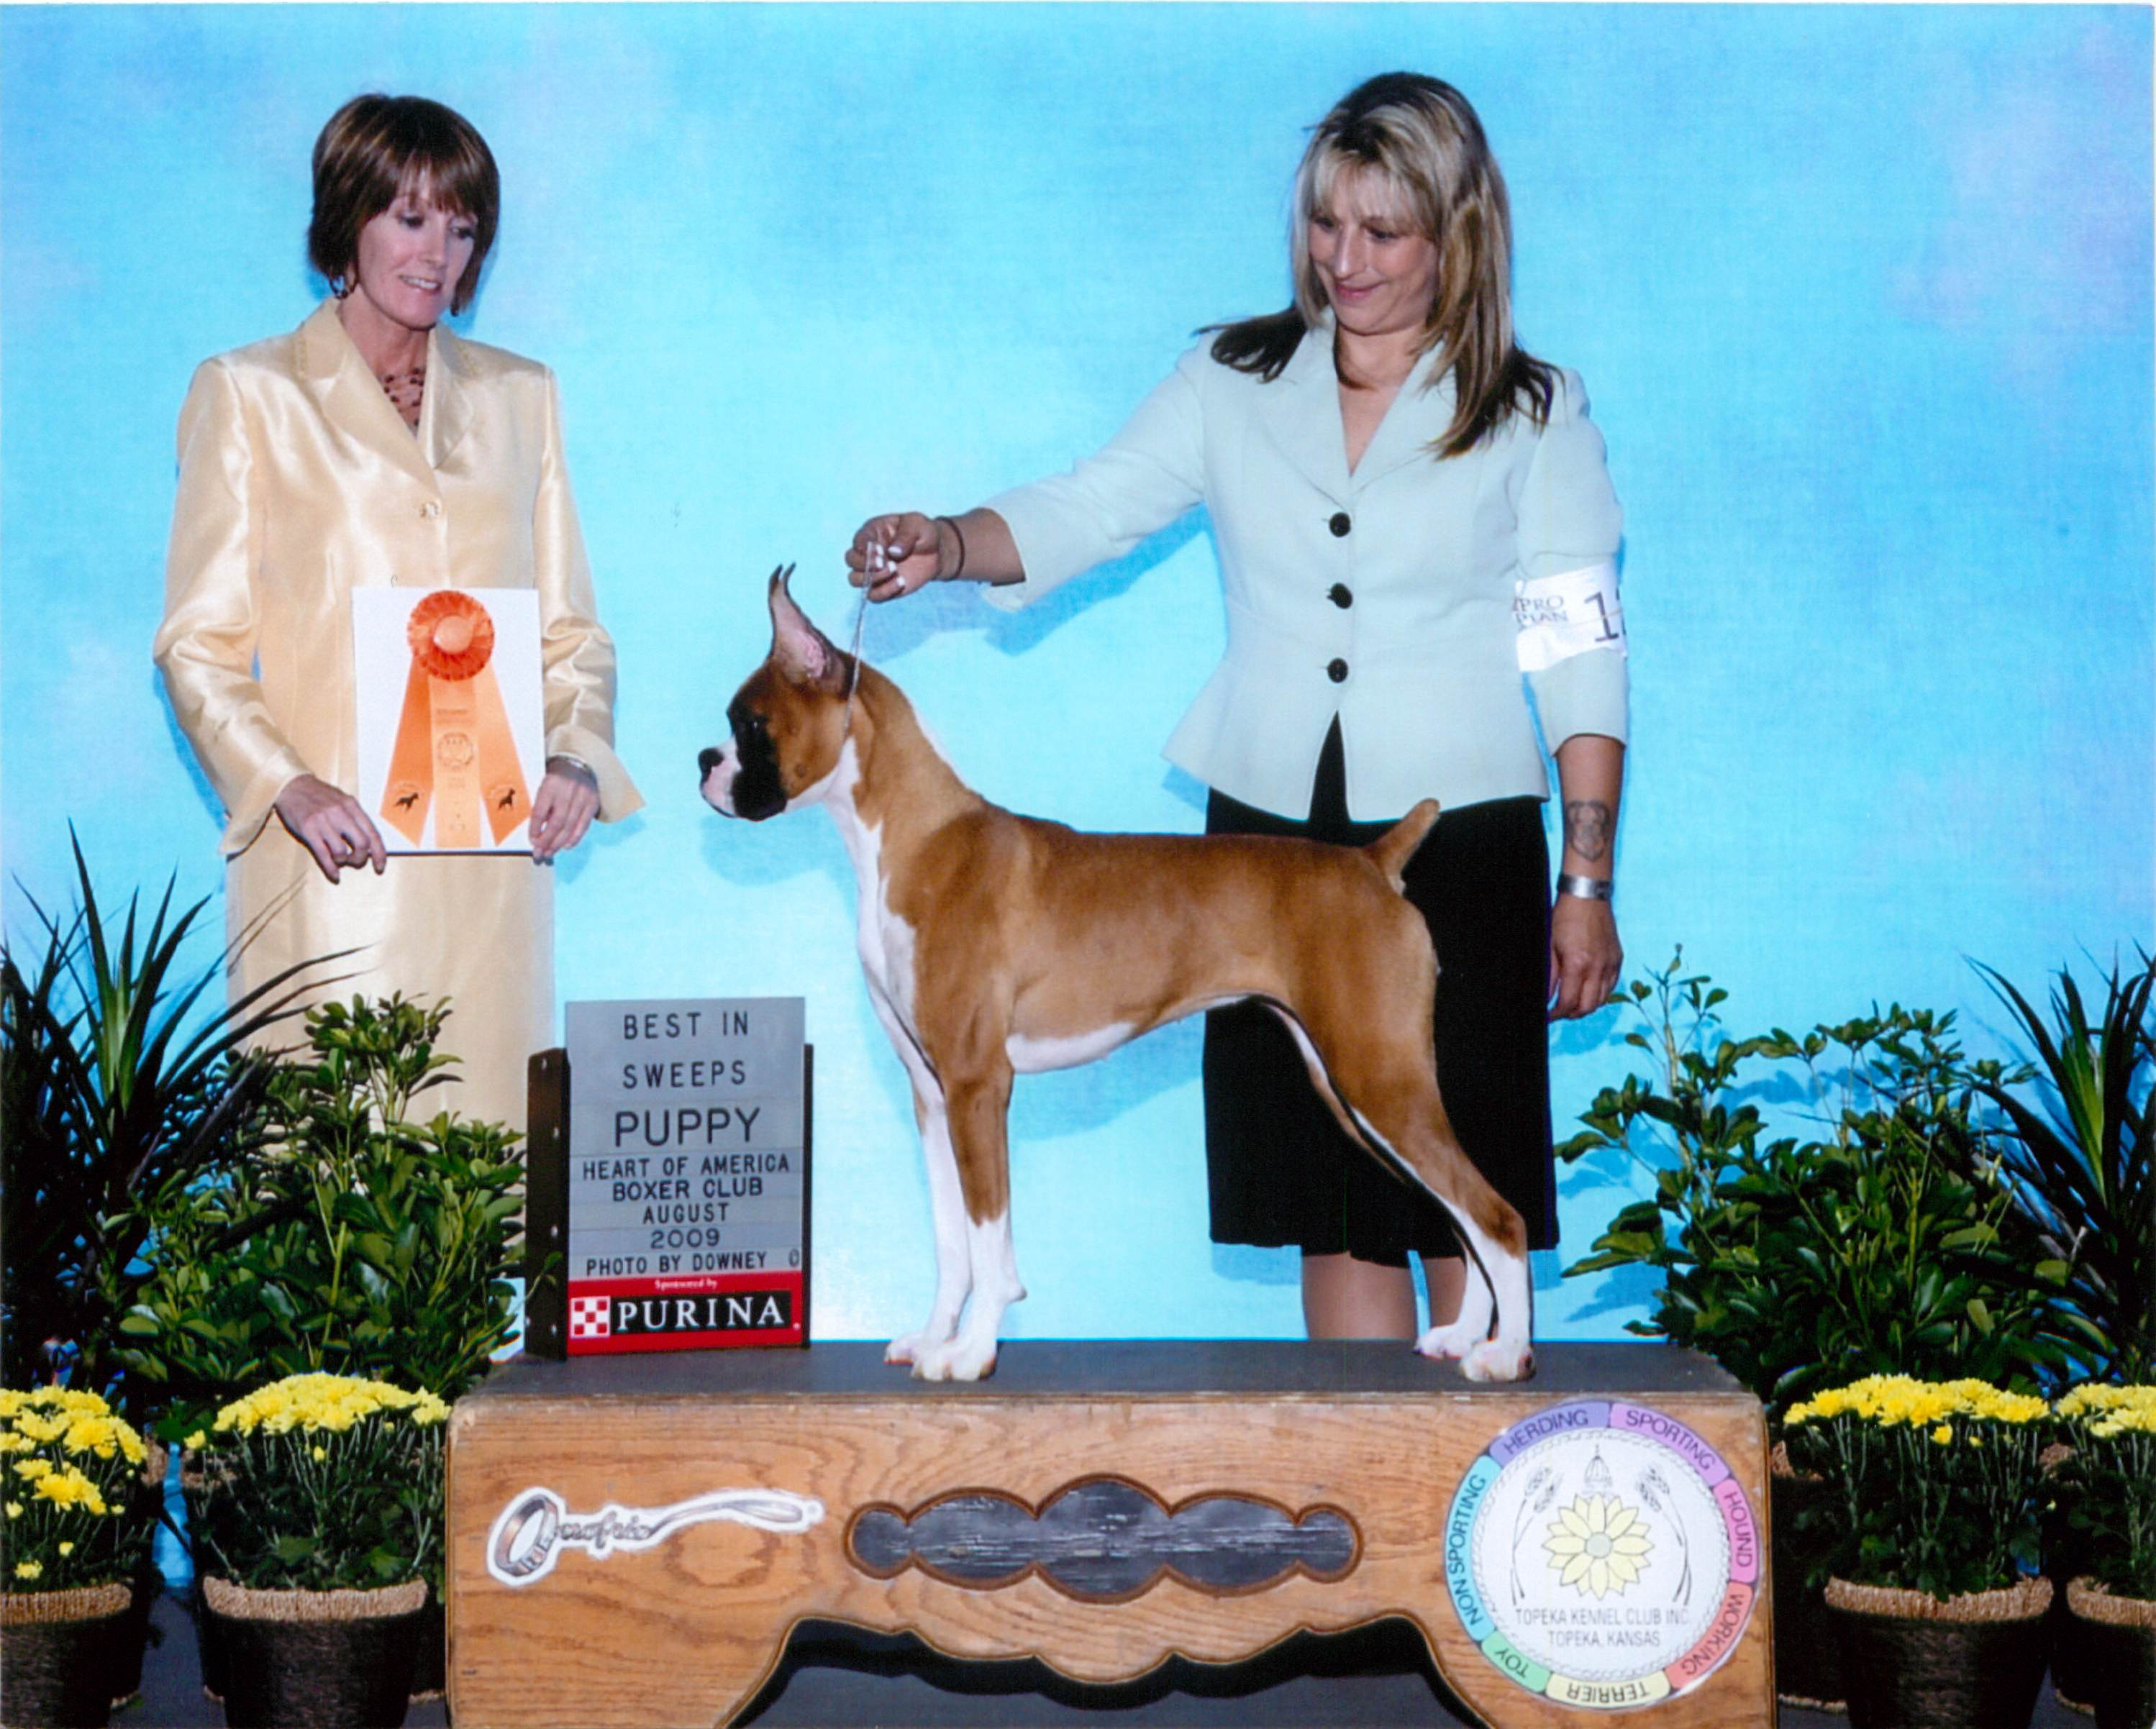 Best Puppy @ 2009 Specialty Show #2